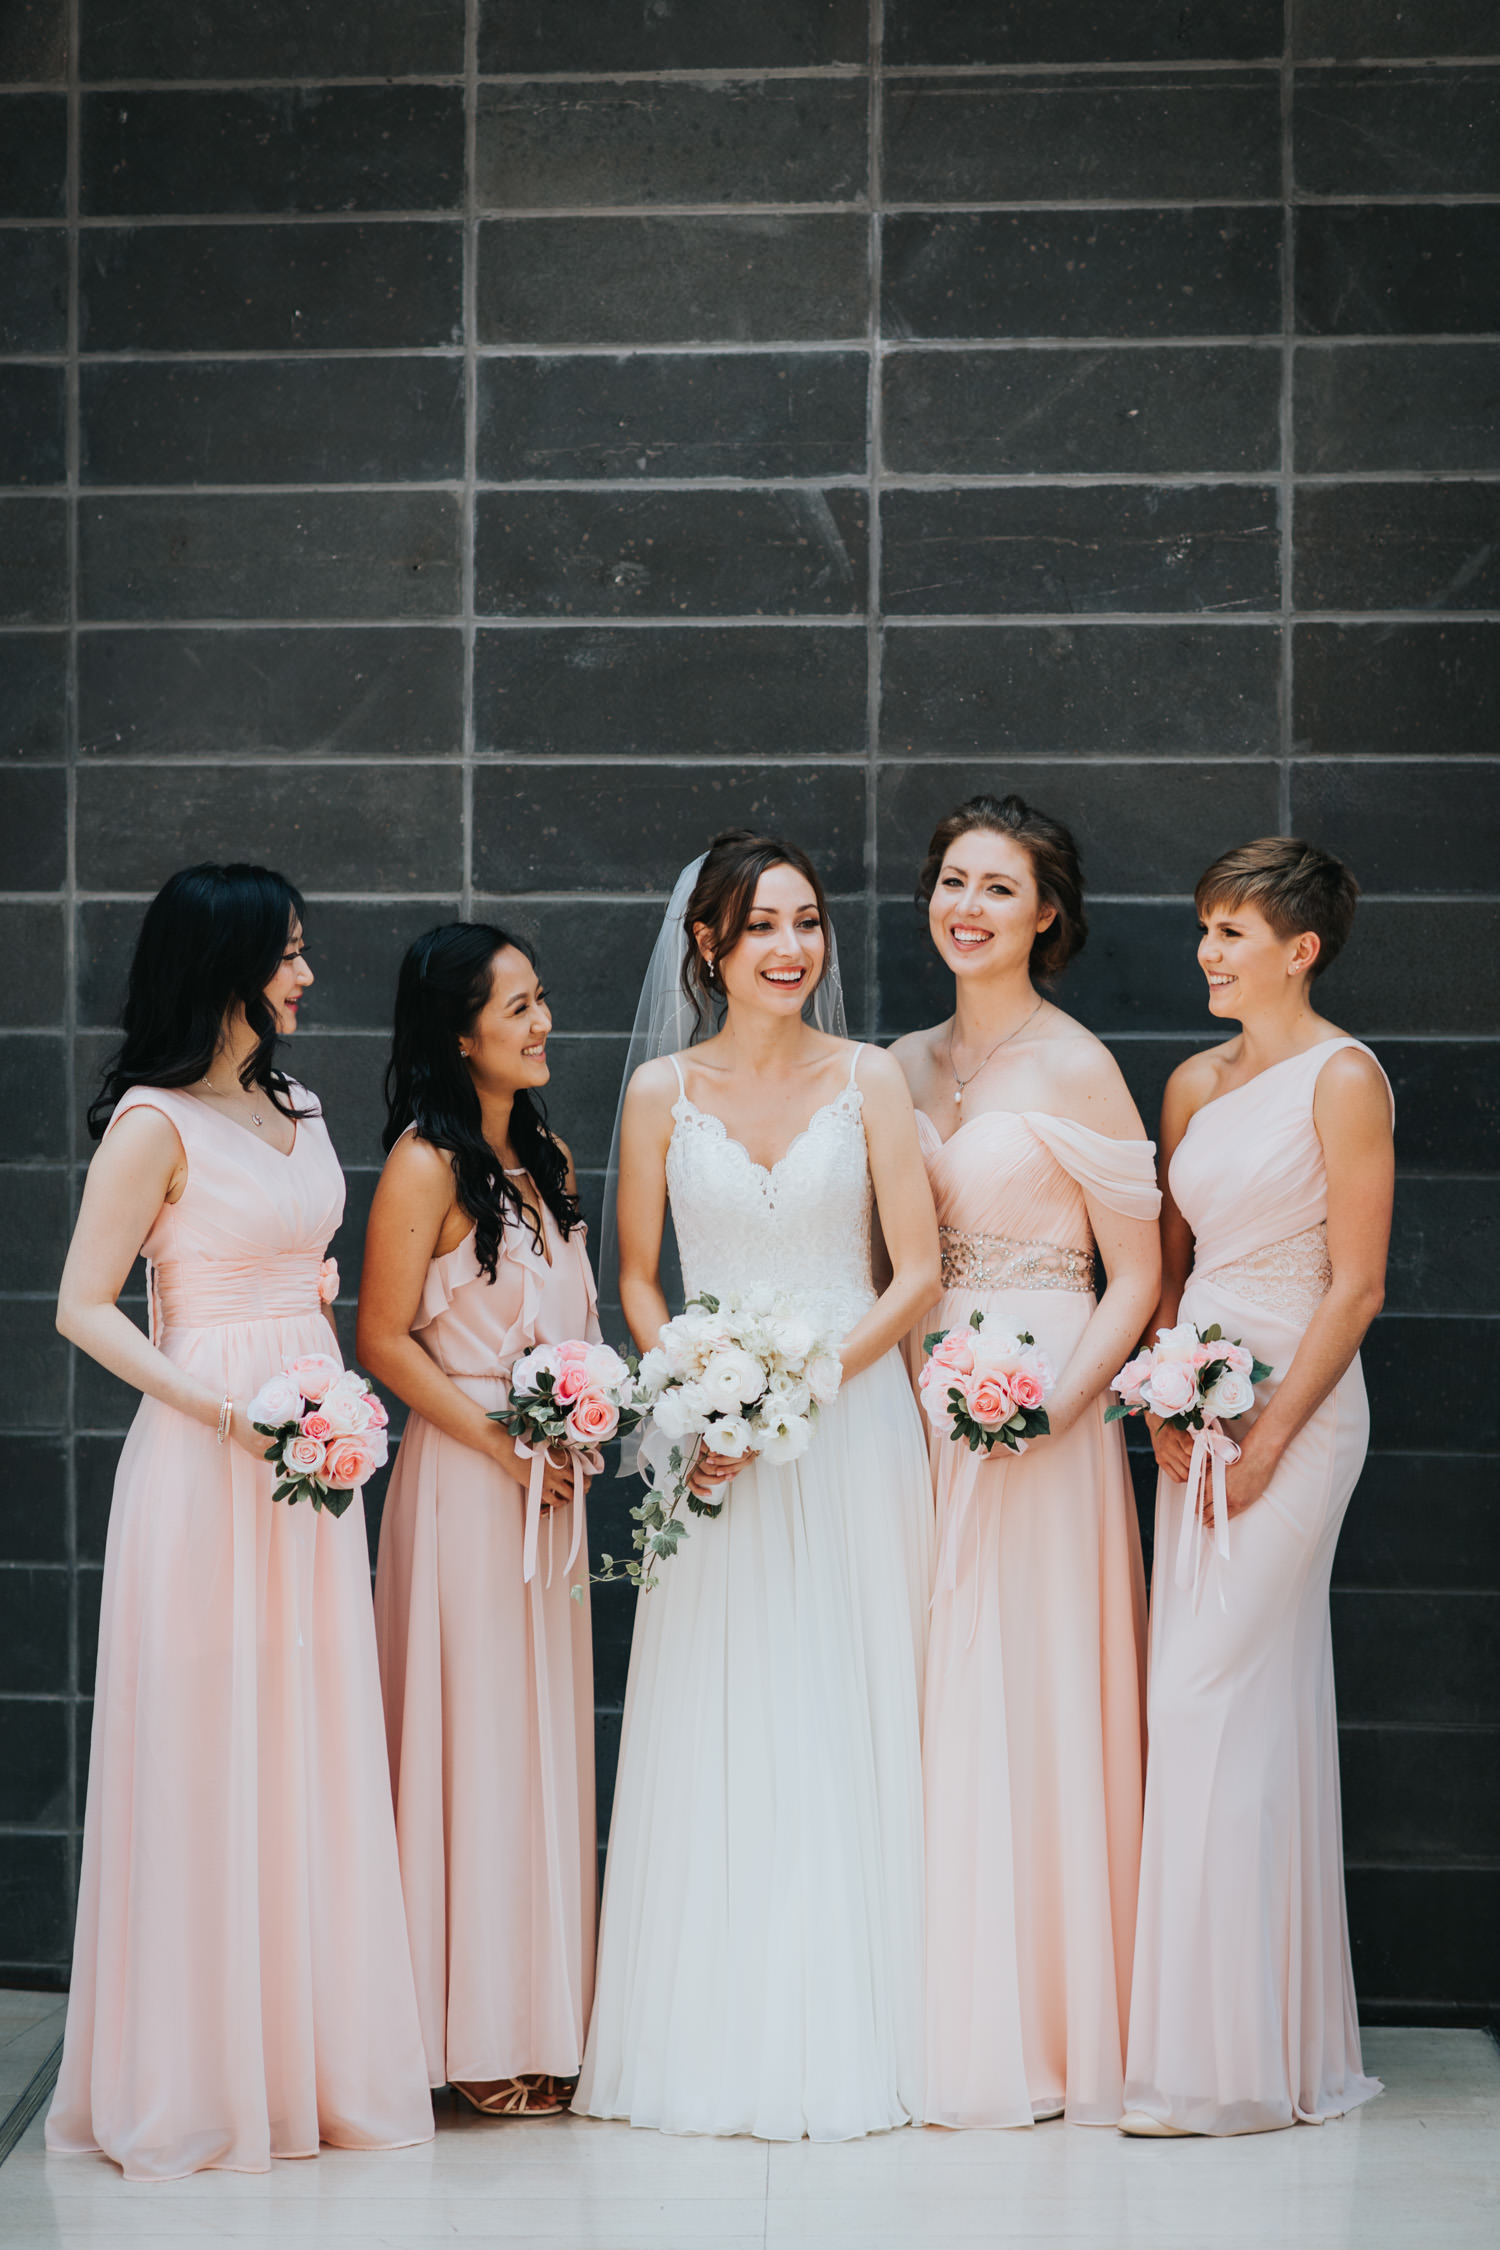 Toronto RCM Atrium Wedding Bridal Party Photo